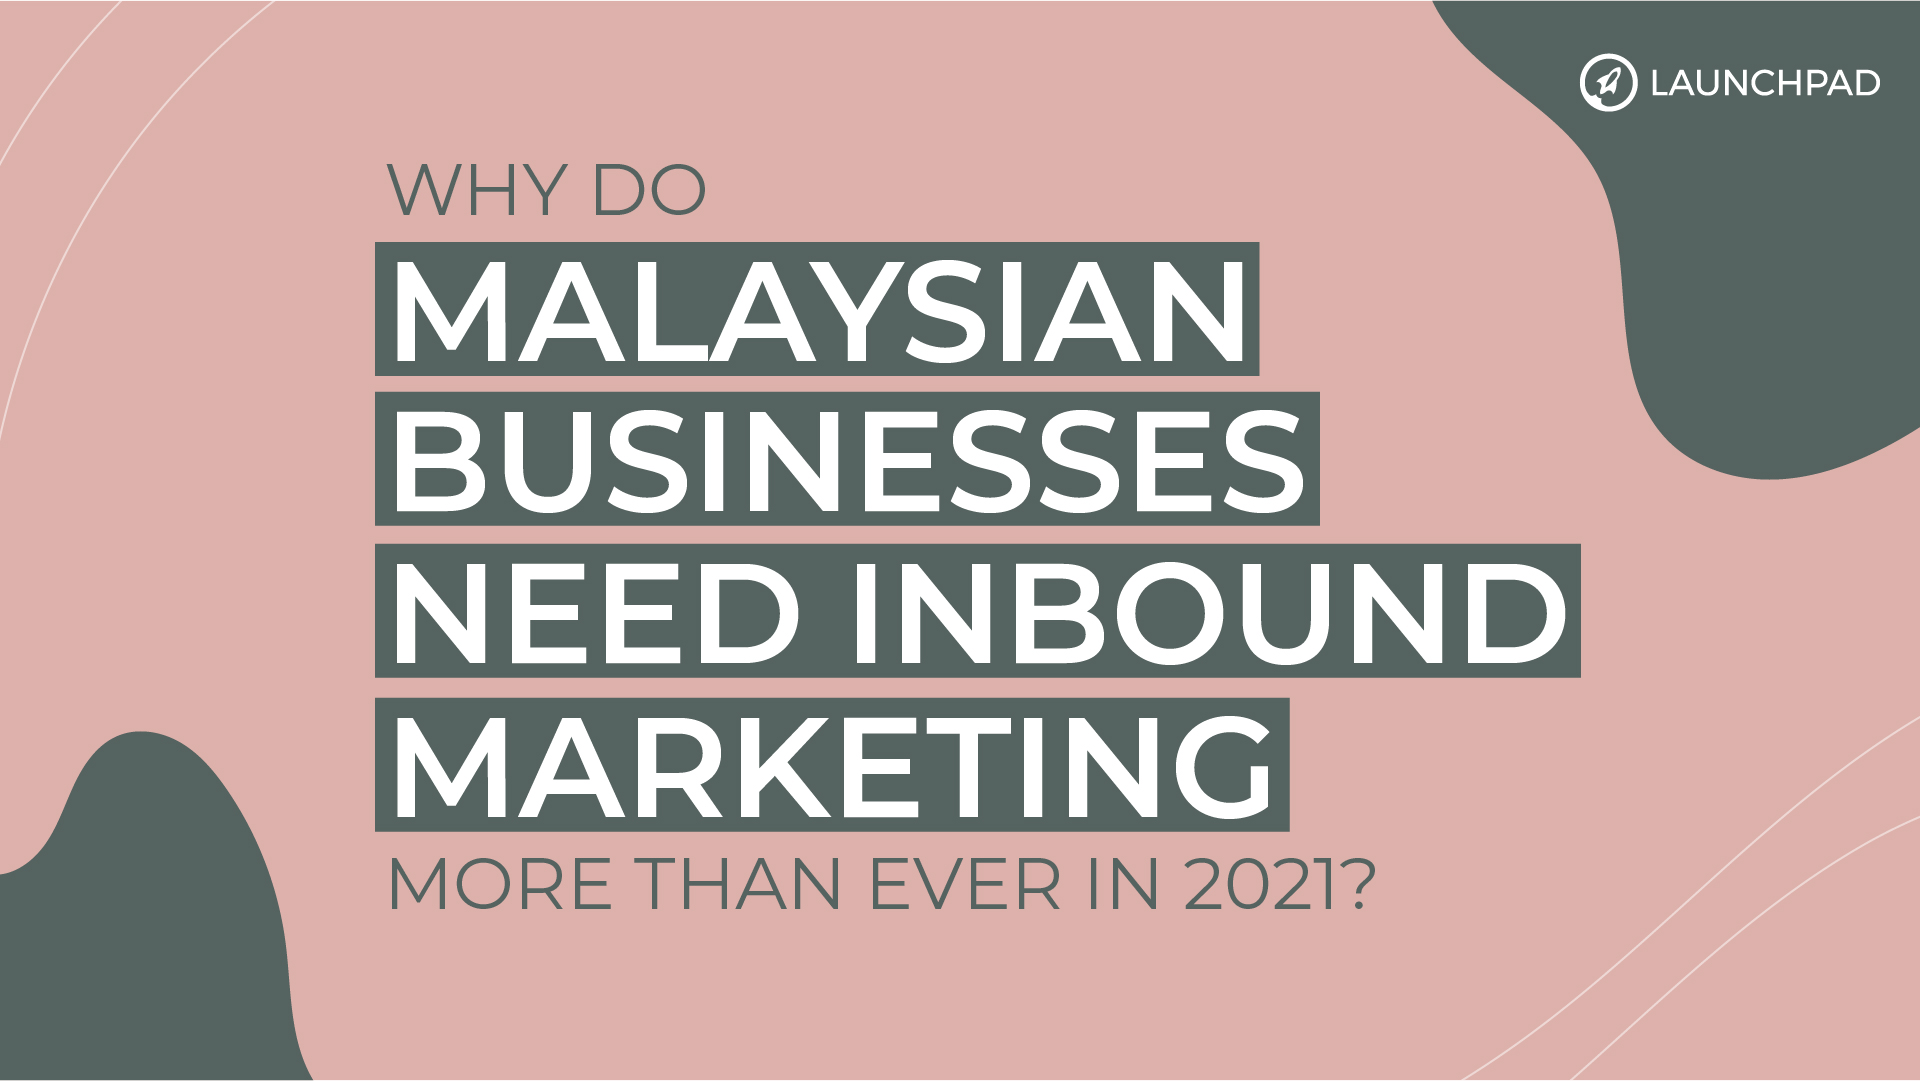 Why Do Malaysian Businesses Need Inbound Marketing More Than Ever in 2021